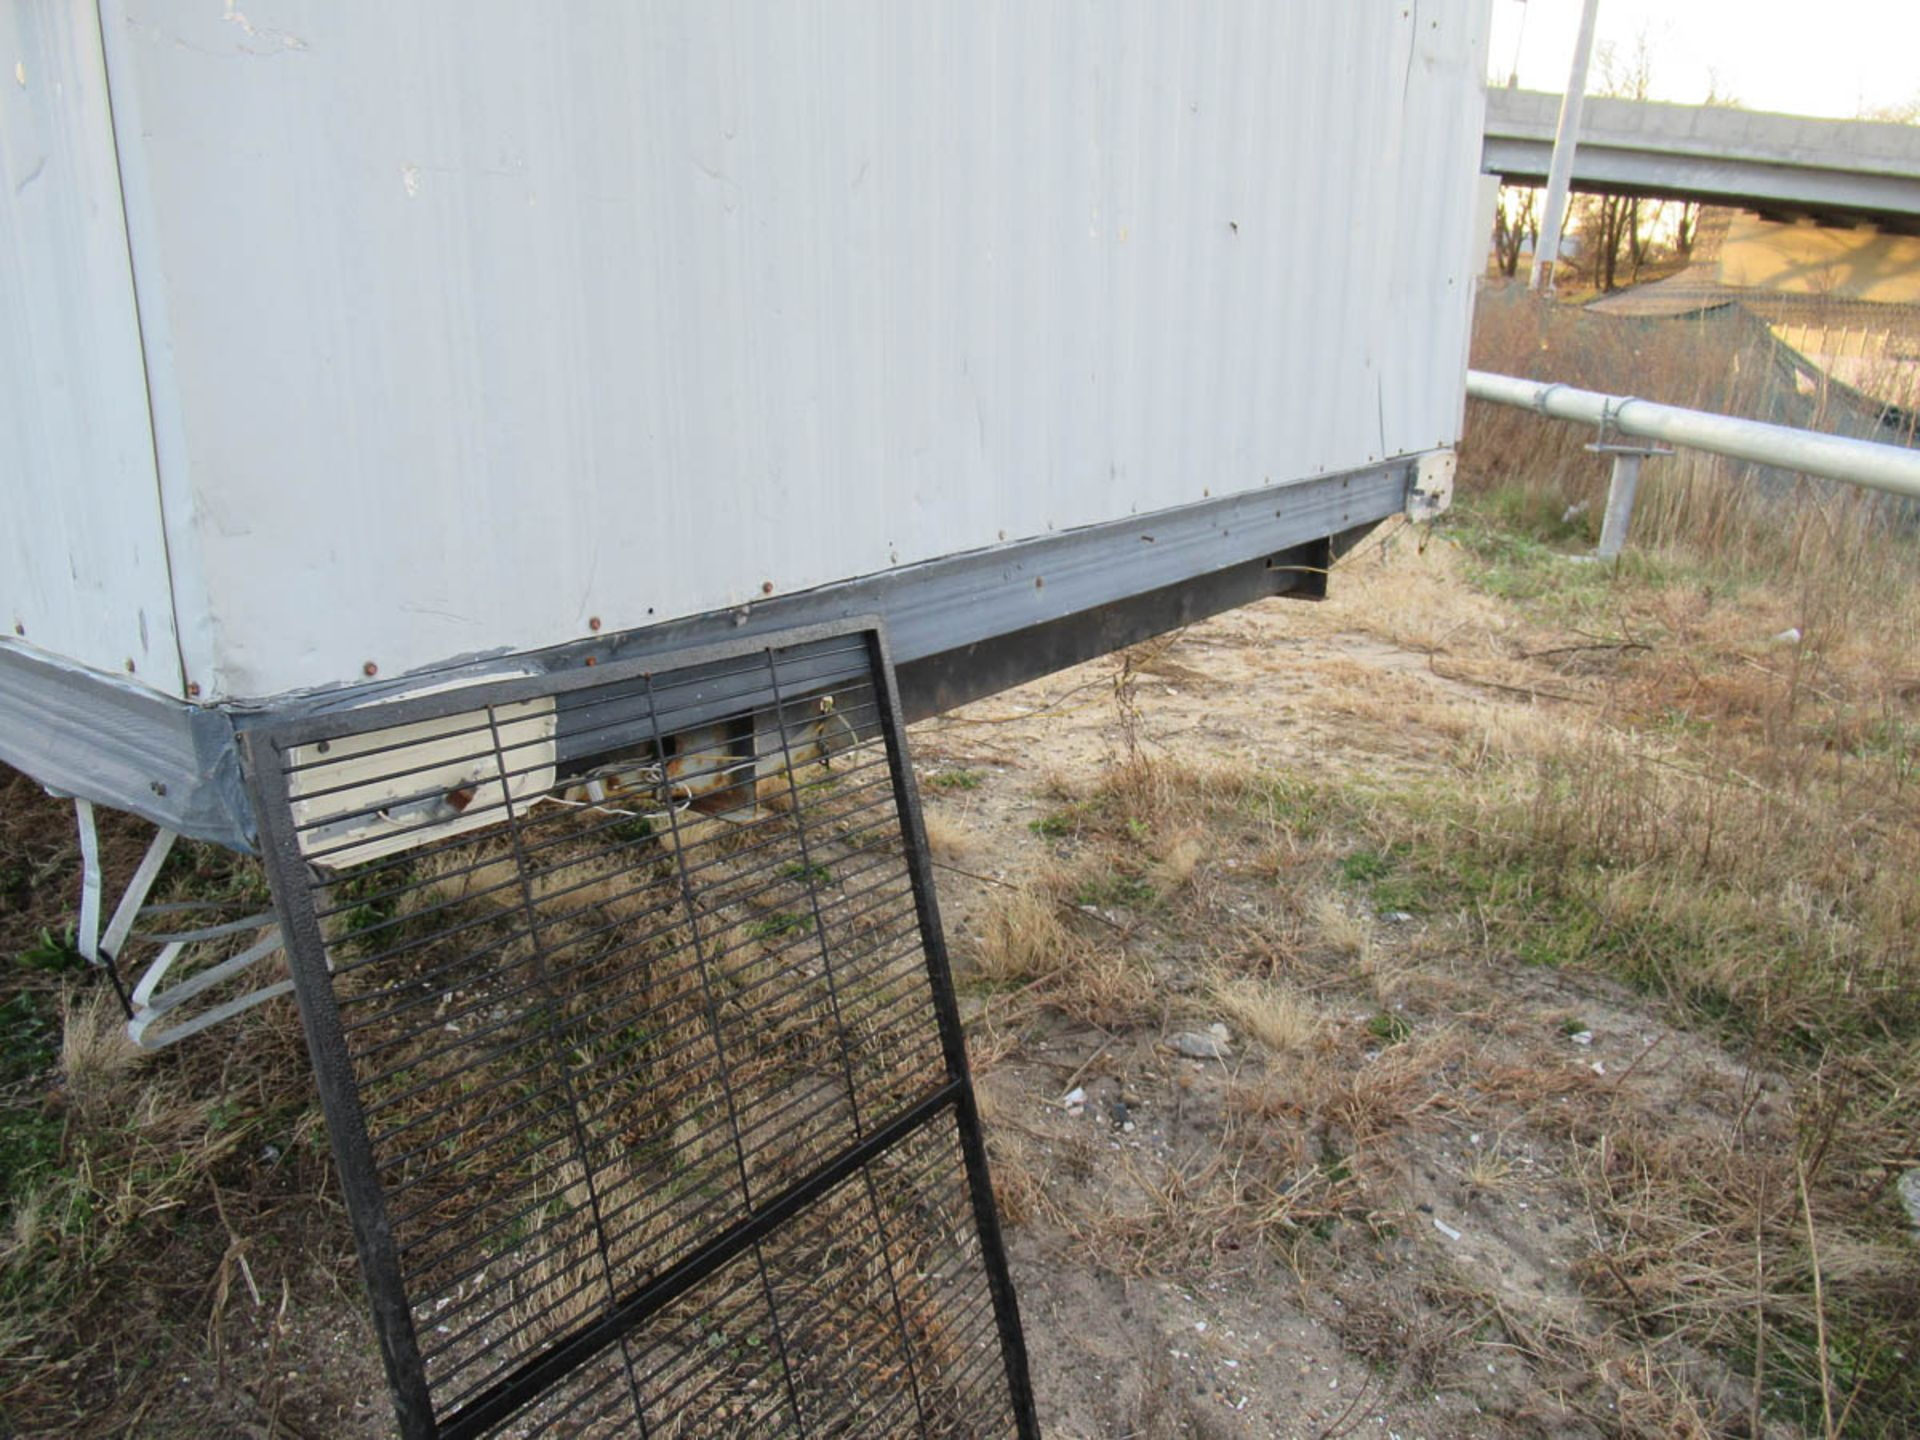 APPROXIMATELY 28' OFFICE TRAILER [LOCATED @ MARINE PARKWAY BRIDGE - QUEENS SIDE] - Image 6 of 9